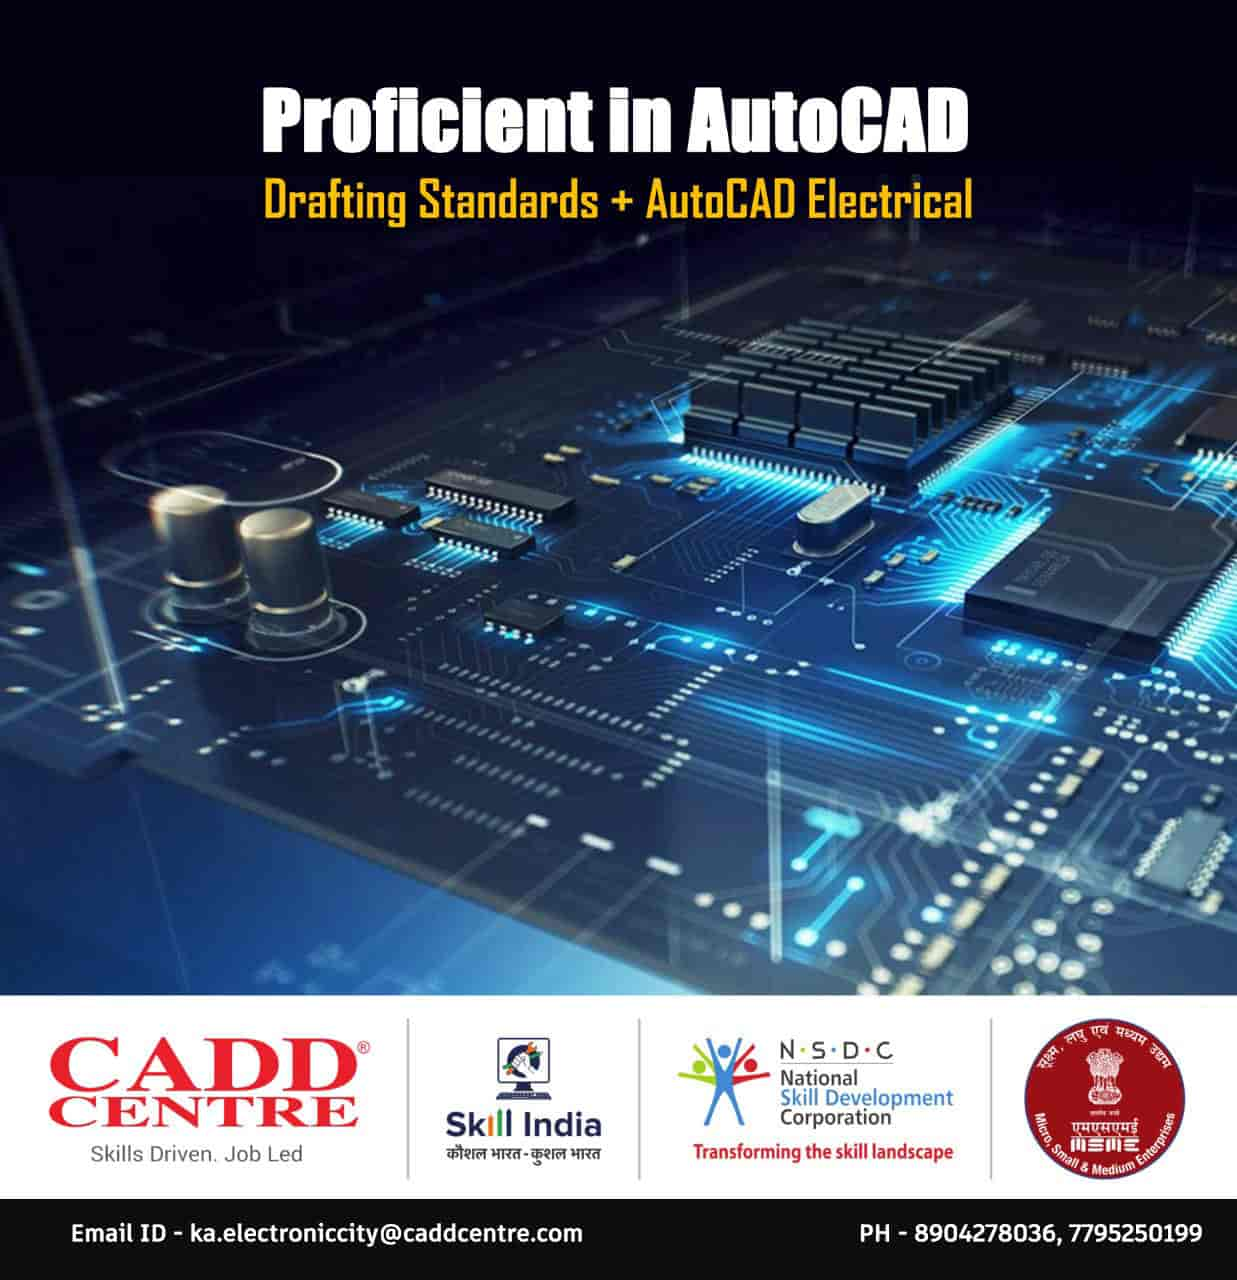 Cadd Centre, Electronic City - CAD Training Institutes in